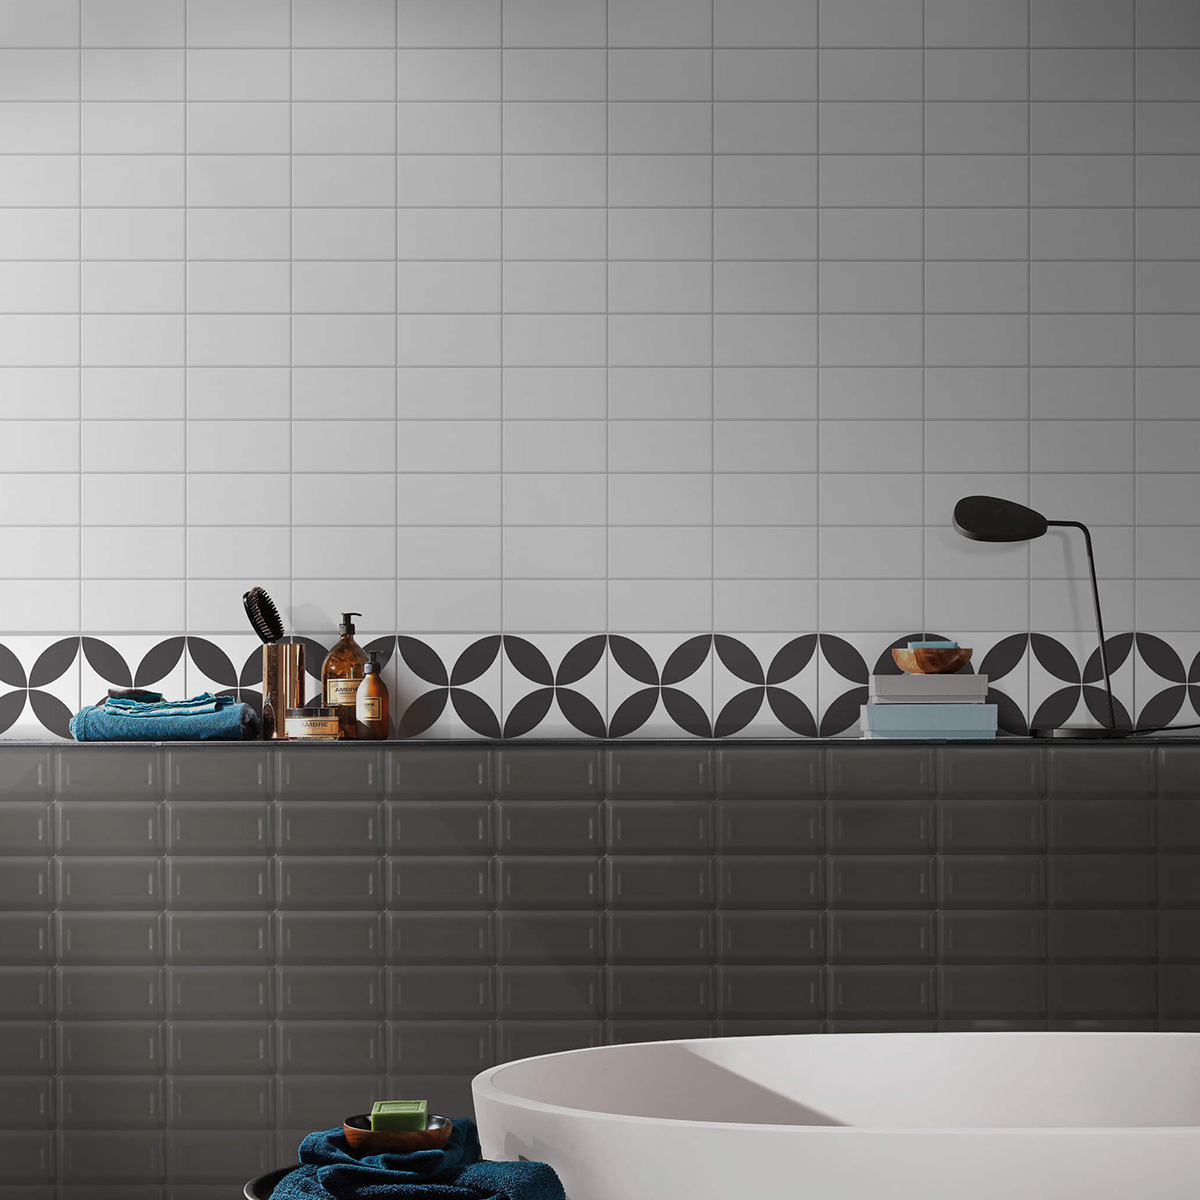 Picasso Flora Black Patterned Tile - Stone3 Brisbane